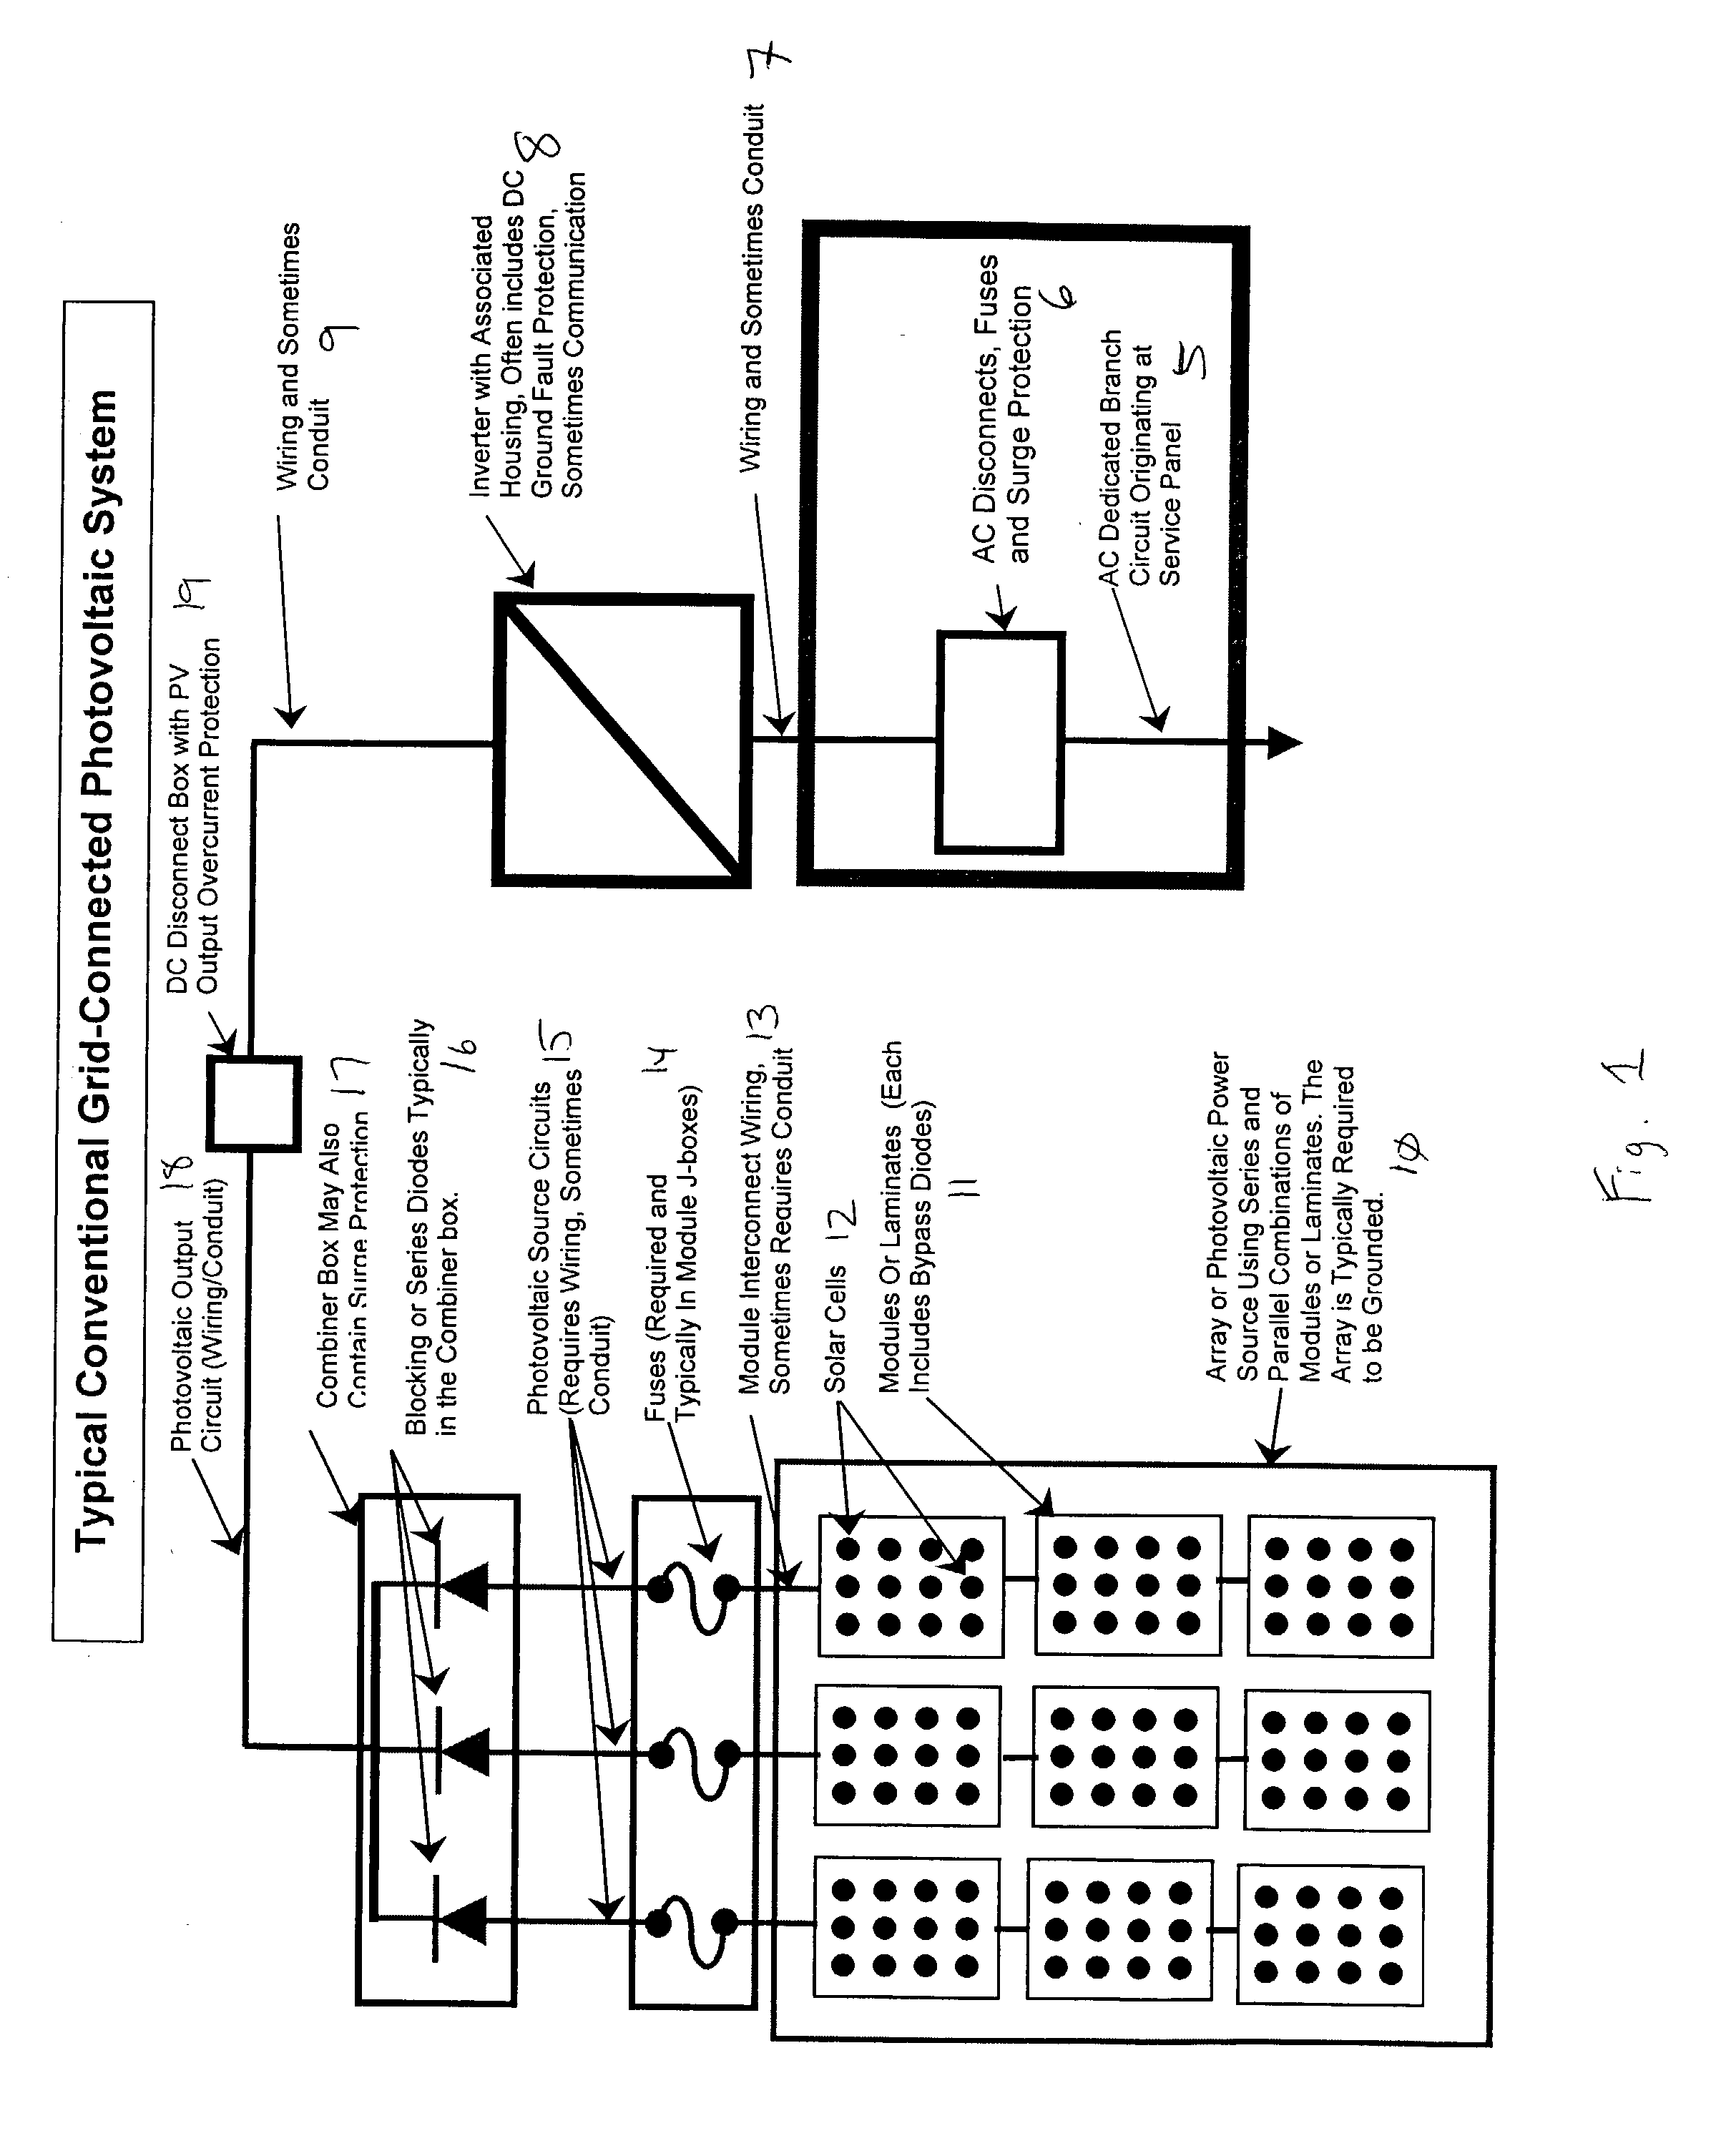 Wiring Diagram For Srl 60 17 Output Terminal Block,Diagram